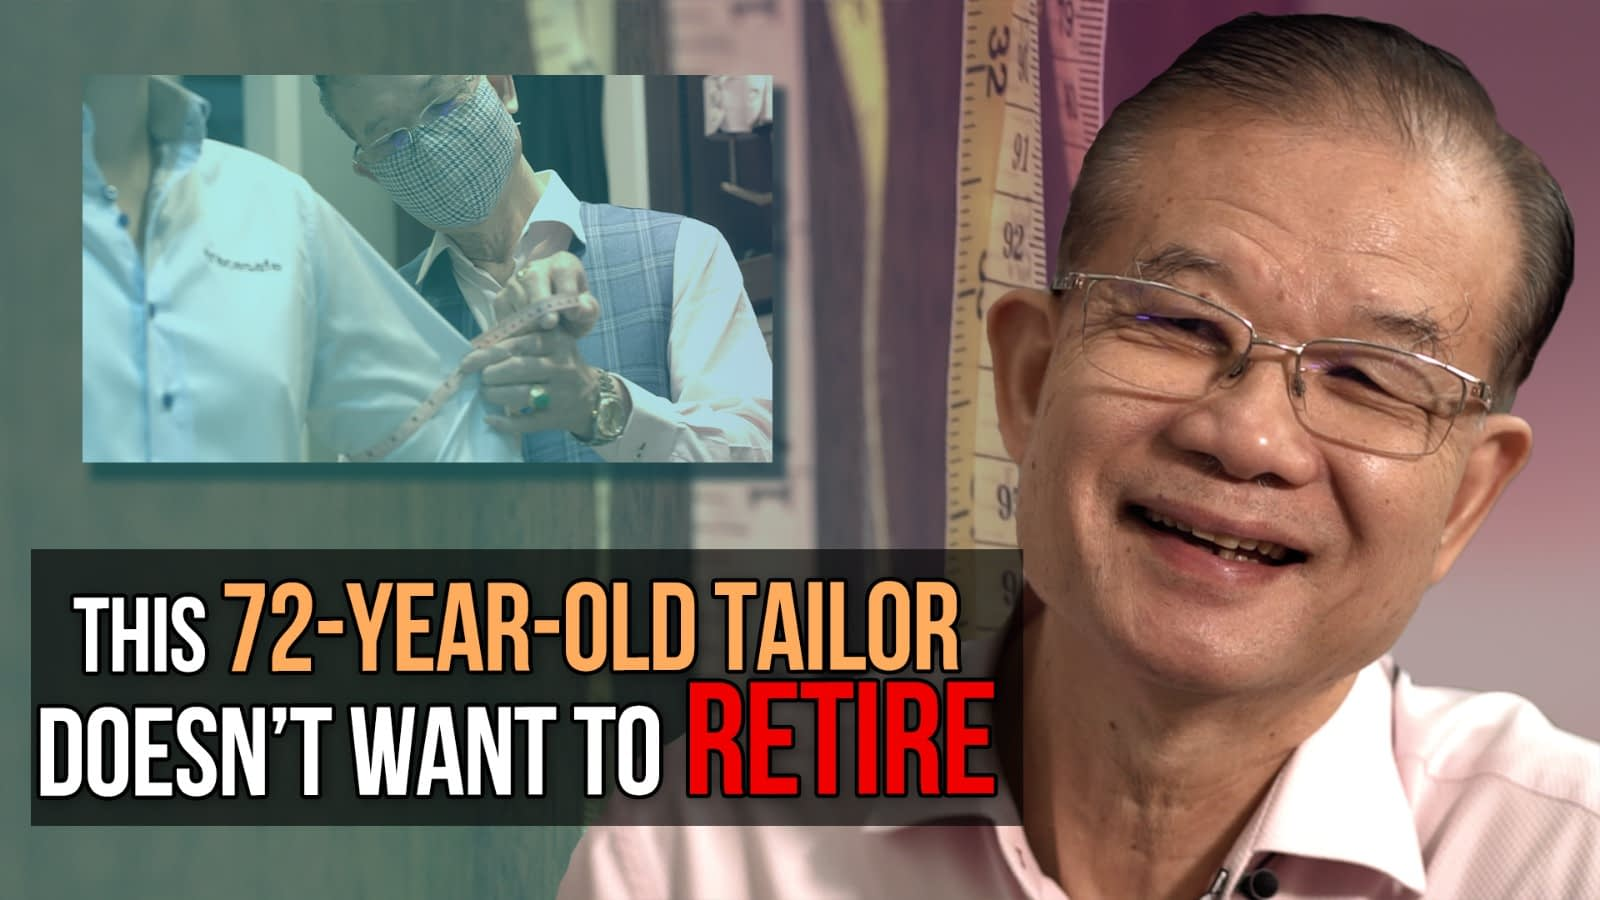 Founder of Meiko Tailor, doesn't want to retire